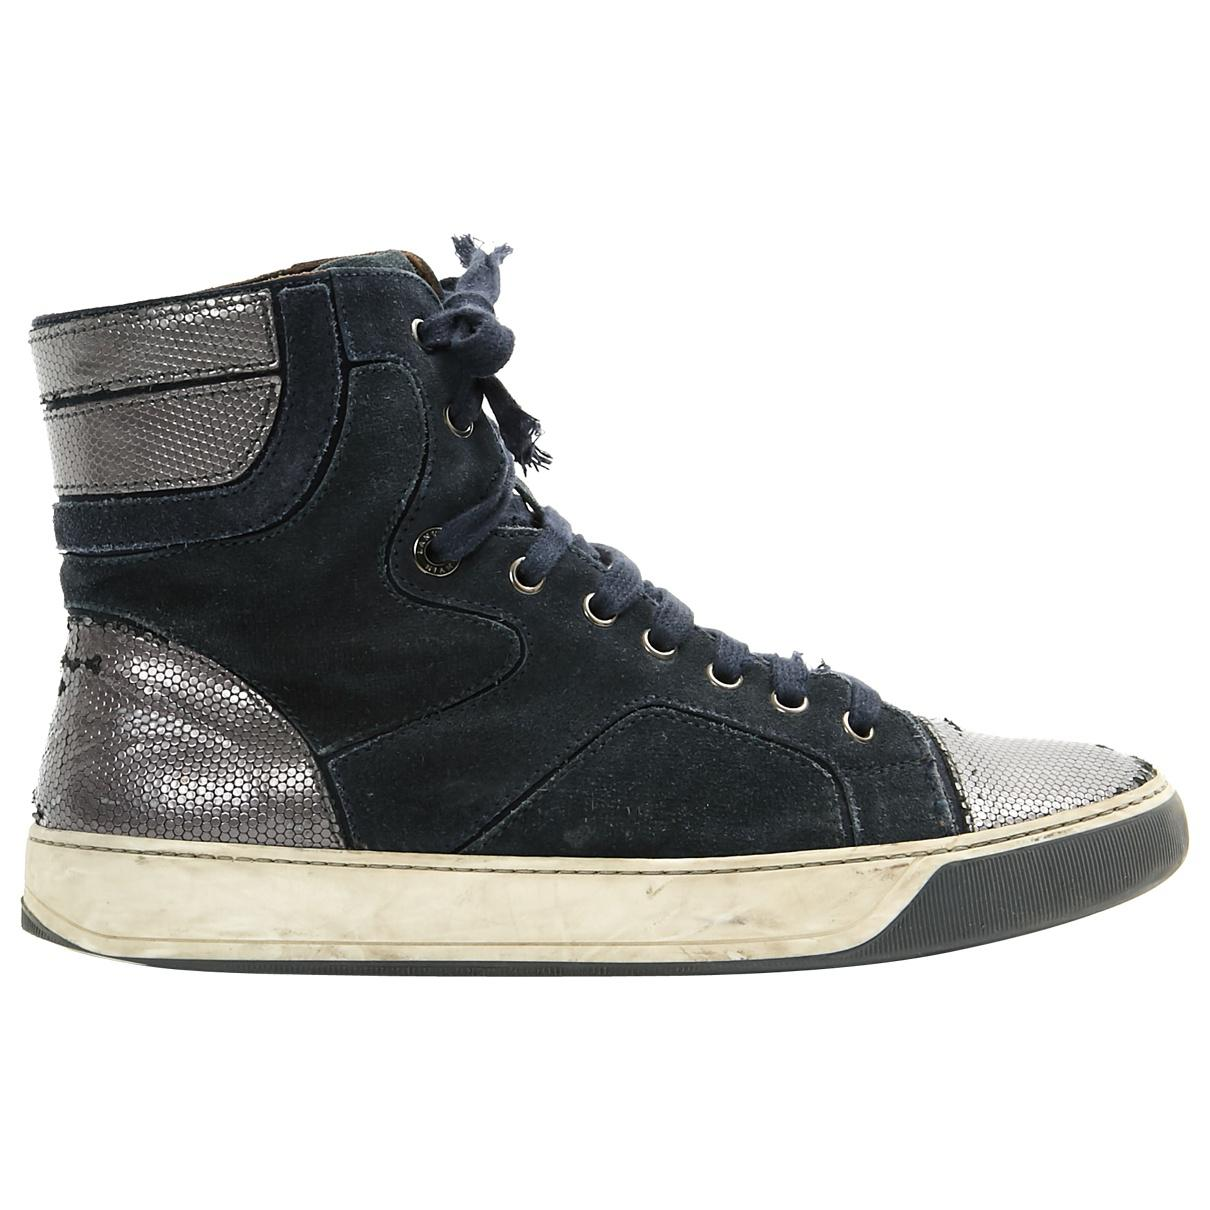 Pre-owned - High trainers Lanvin vfSlTpVUkm